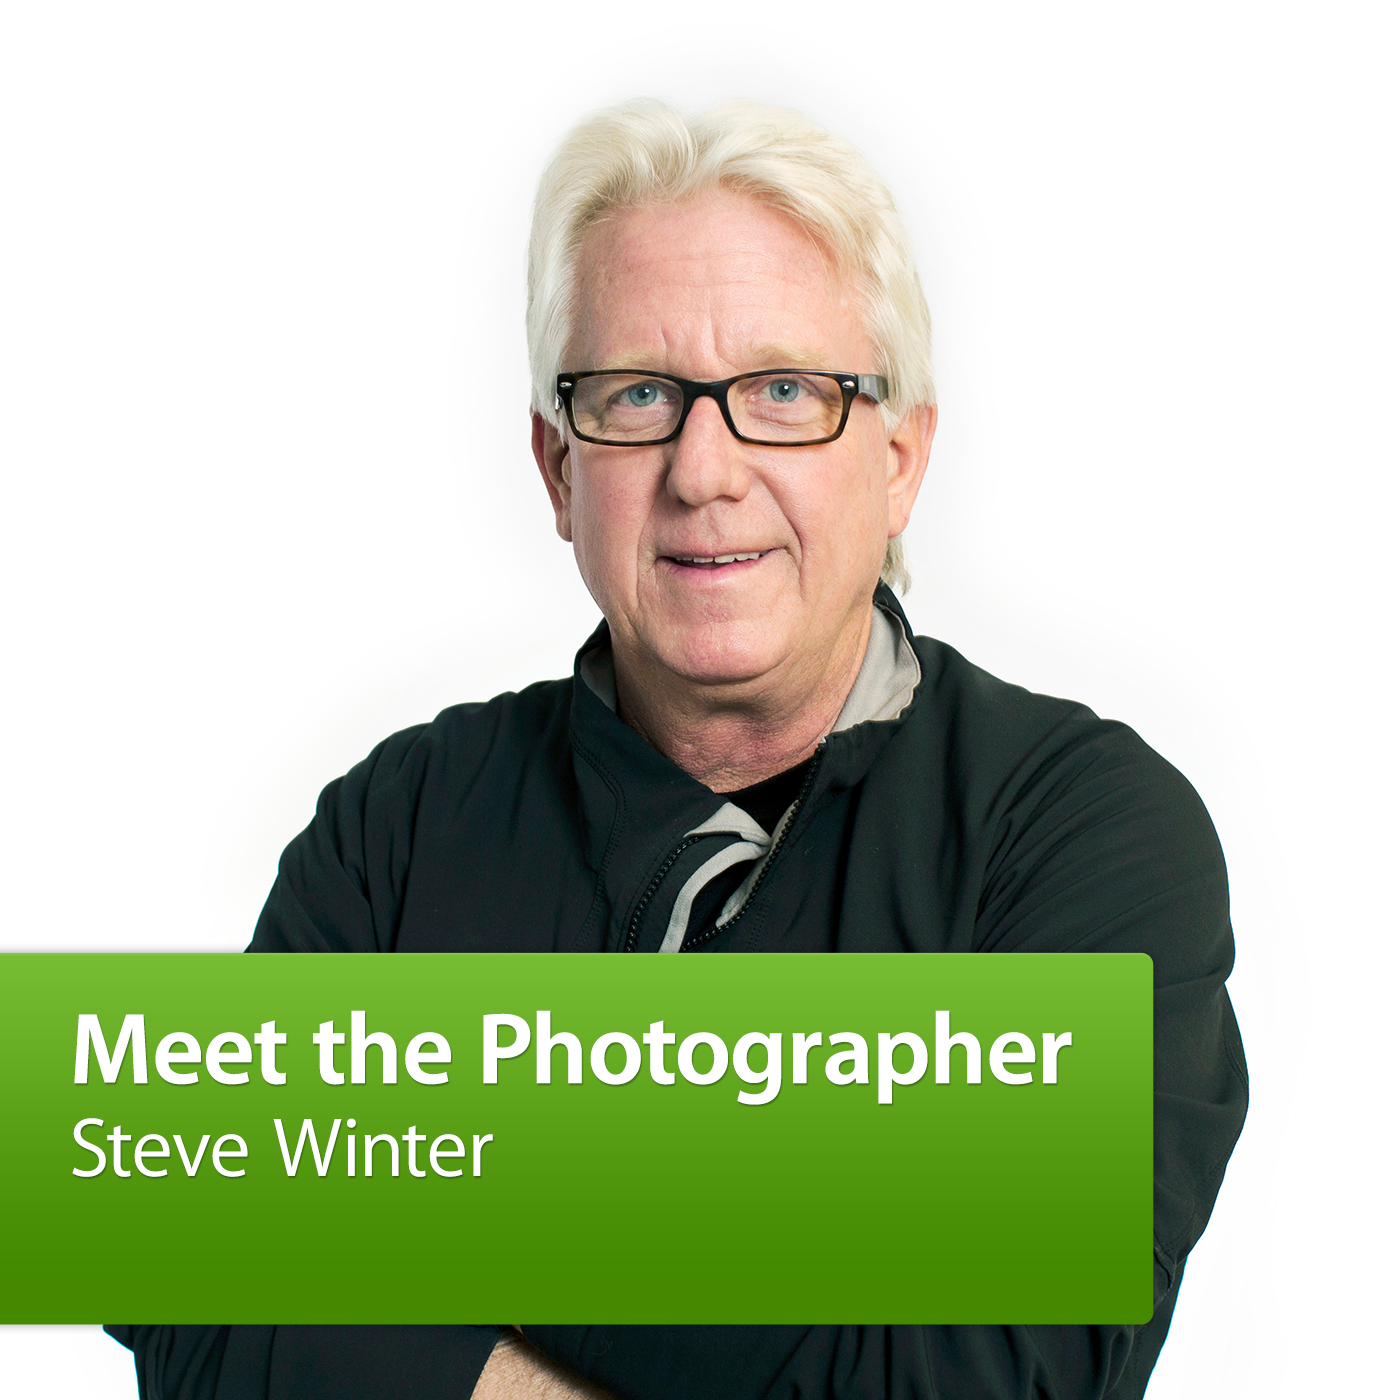 Steve Winter: Meet the Photographer